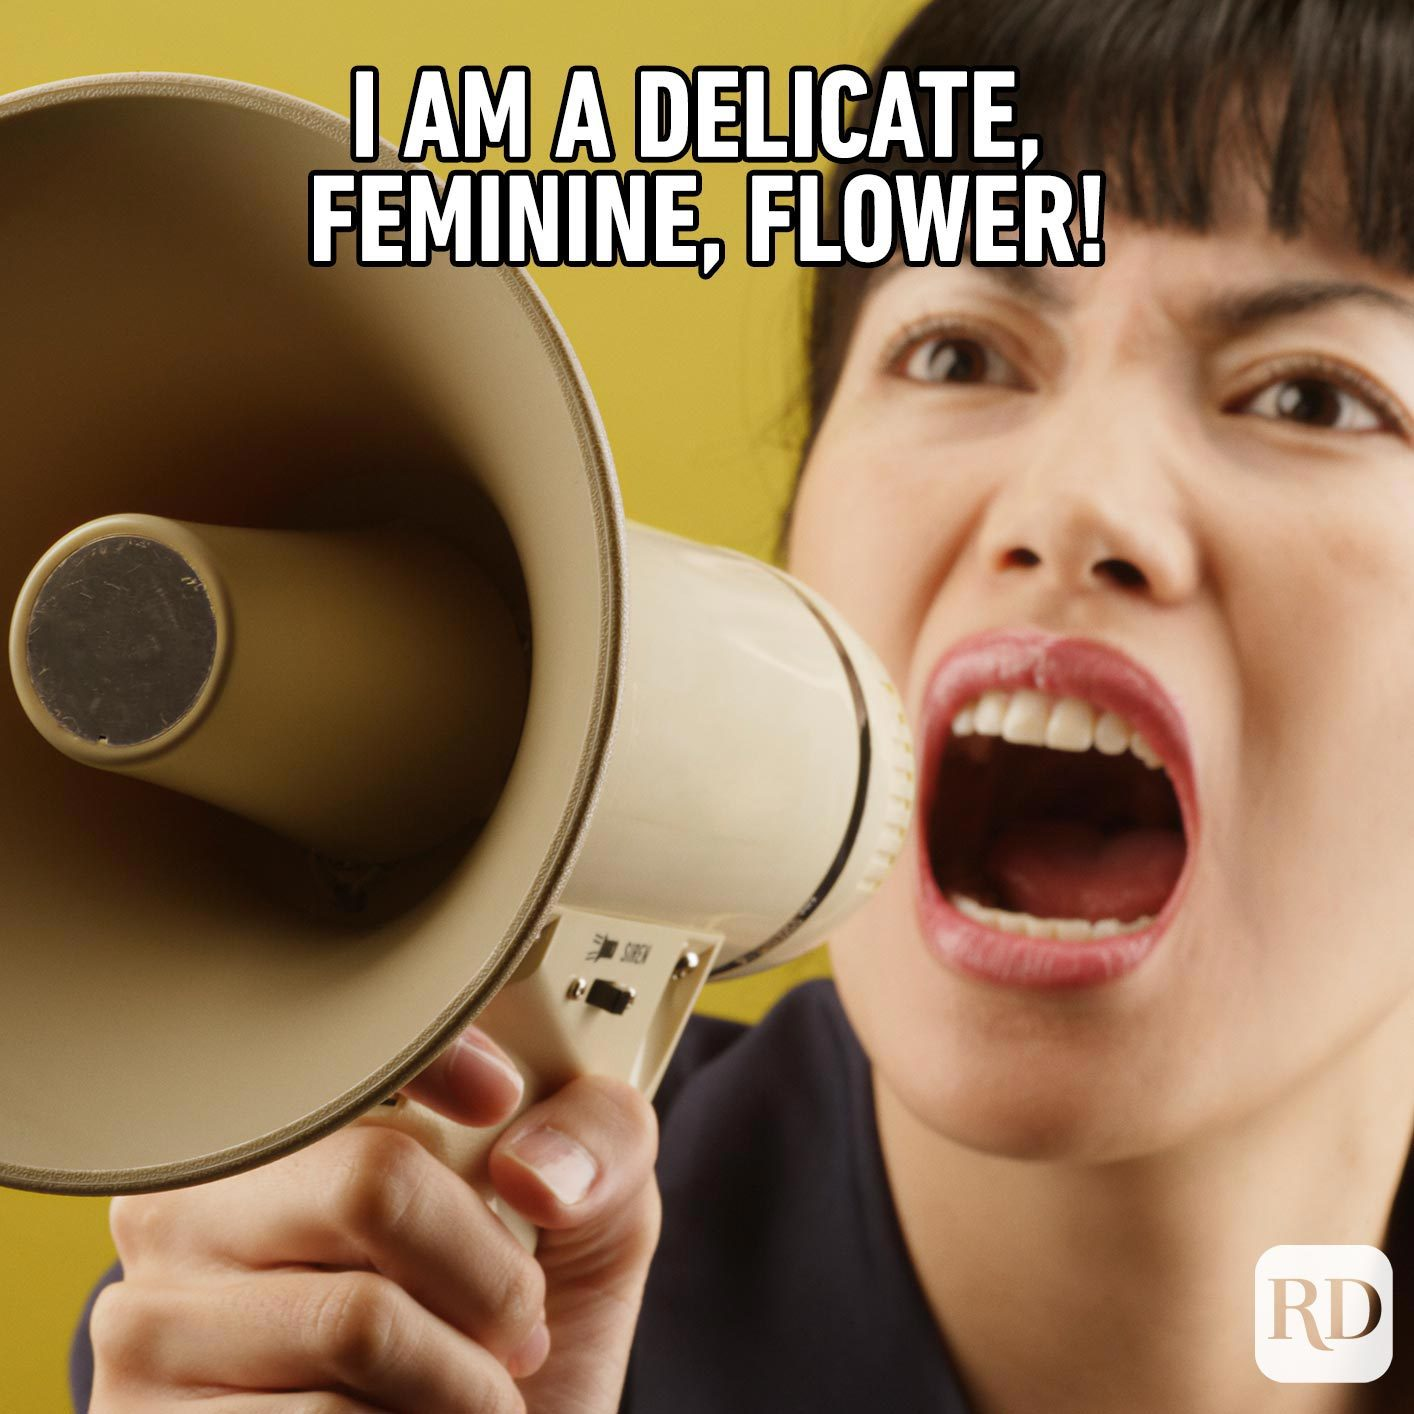 Woman shouting into megaphone with aggression. Meme text: I am a delicate, feminine, flower!